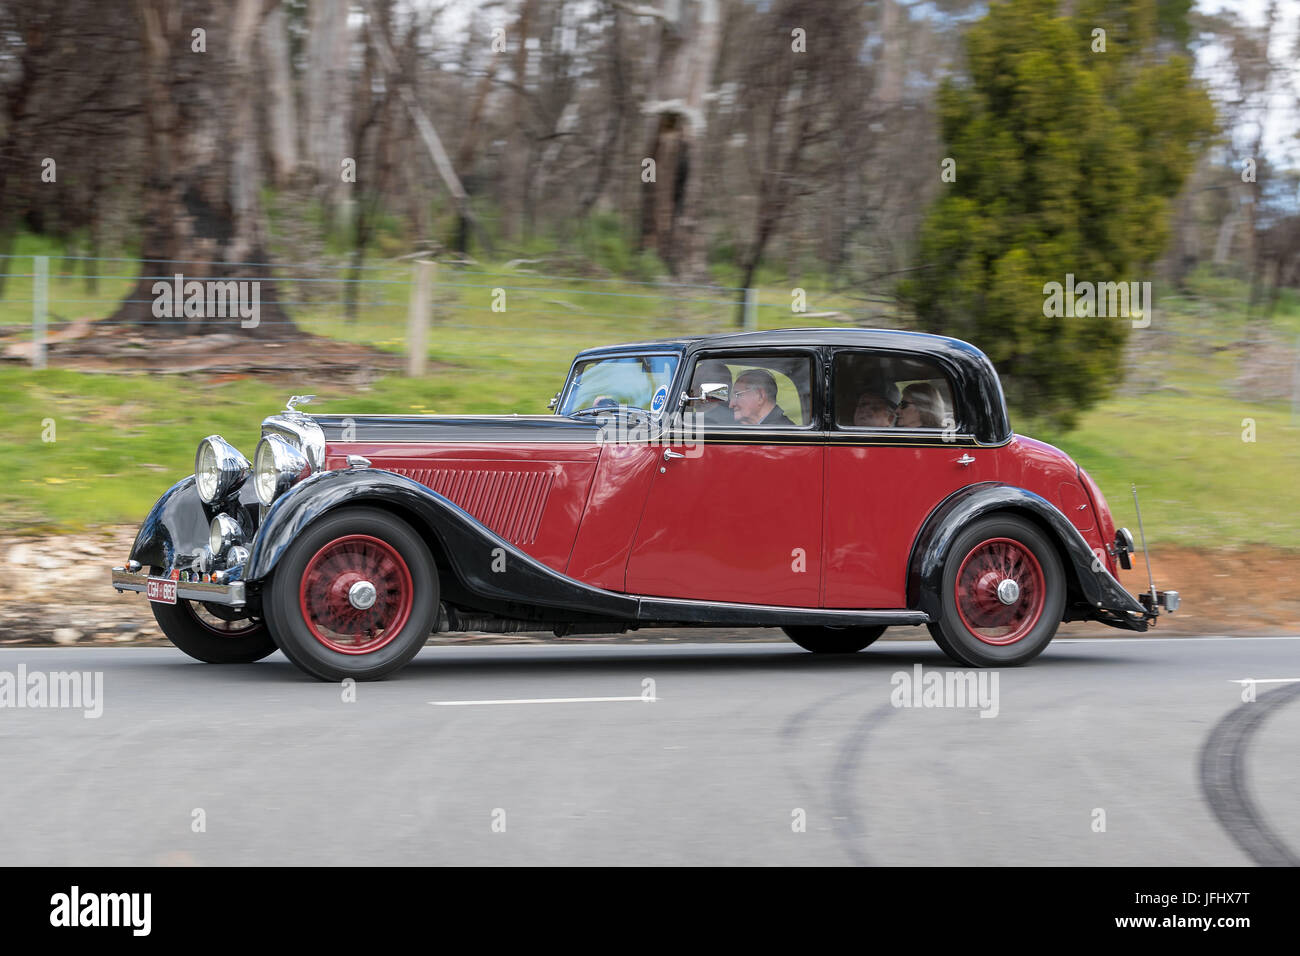 Vintage 1935 Bentley Derby 3.5L Saloon driving on country roads near the town of Birdwood, South Australia. - Stock Image